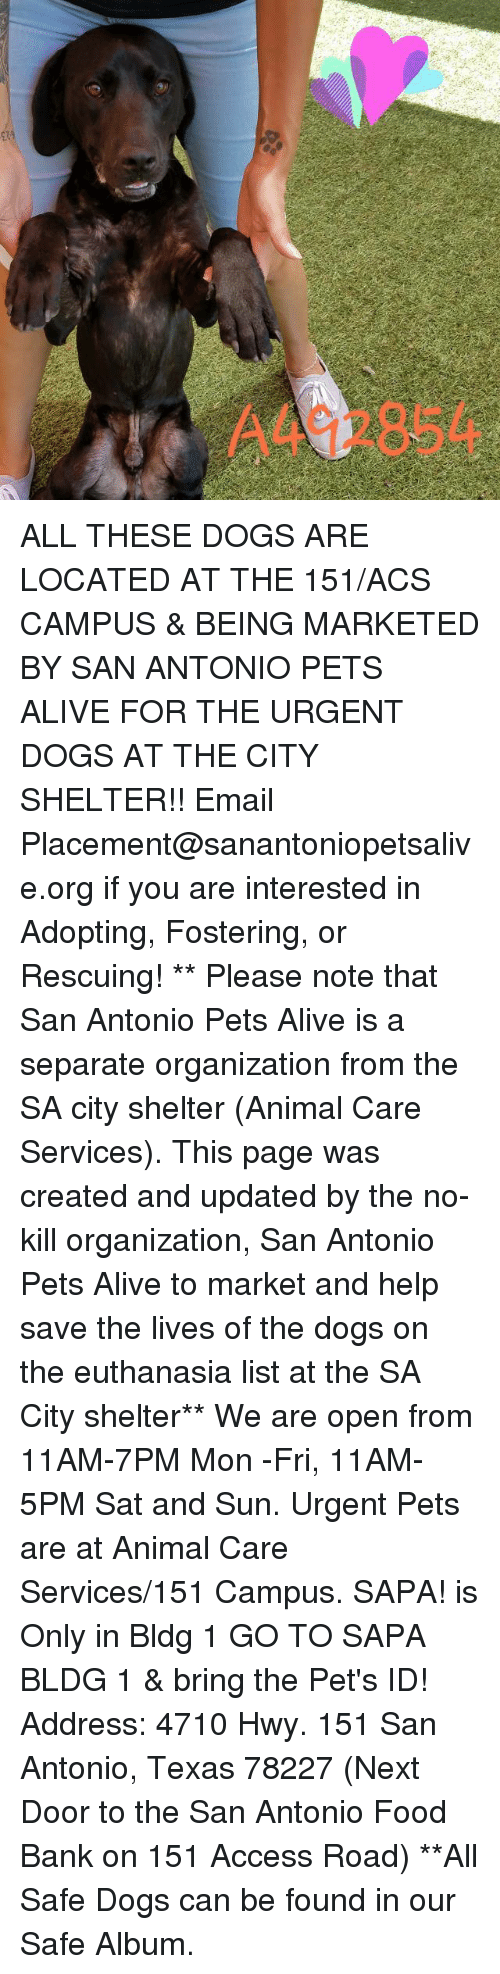 Alive, Dogs, and Food: A492854 ALL THESE DOGS ARE LOCATED AT THE 151/ACS CAMPUS & BEING MARKETED BY SAN ANTONIO PETS ALIVE FOR THE URGENT DOGS AT THE CITY SHELTER!!  Email Placement@sanantoniopetsalive.org if you are interested in Adopting, Fostering, or Rescuing!                                                                                                                                                                                                                                                                                                                                                             ** Please note that San Antonio Pets Alive is a separate organization from the SA city shelter (Animal Care Services). This page was created and updated by the no-kill organization, San Antonio Pets Alive to market and help save the lives of the dogs on the euthanasia list at the SA City shelter**  We are open from 11AM-7PM Mon -Fri, 11AM-5PM Sat and Sun. Urgent Pets are at Animal Care Services/151 Campus. SAPA! is Only in Bldg 1 GO TO SAPA BLDG 1 & bring the Pet's ID! Address: 4710 Hwy. 151 San Antonio, Texas 78227 (Next Door to the San Antonio Food Bank on 151 Access Road) **All Safe Dogs can be found in our Safe Album.